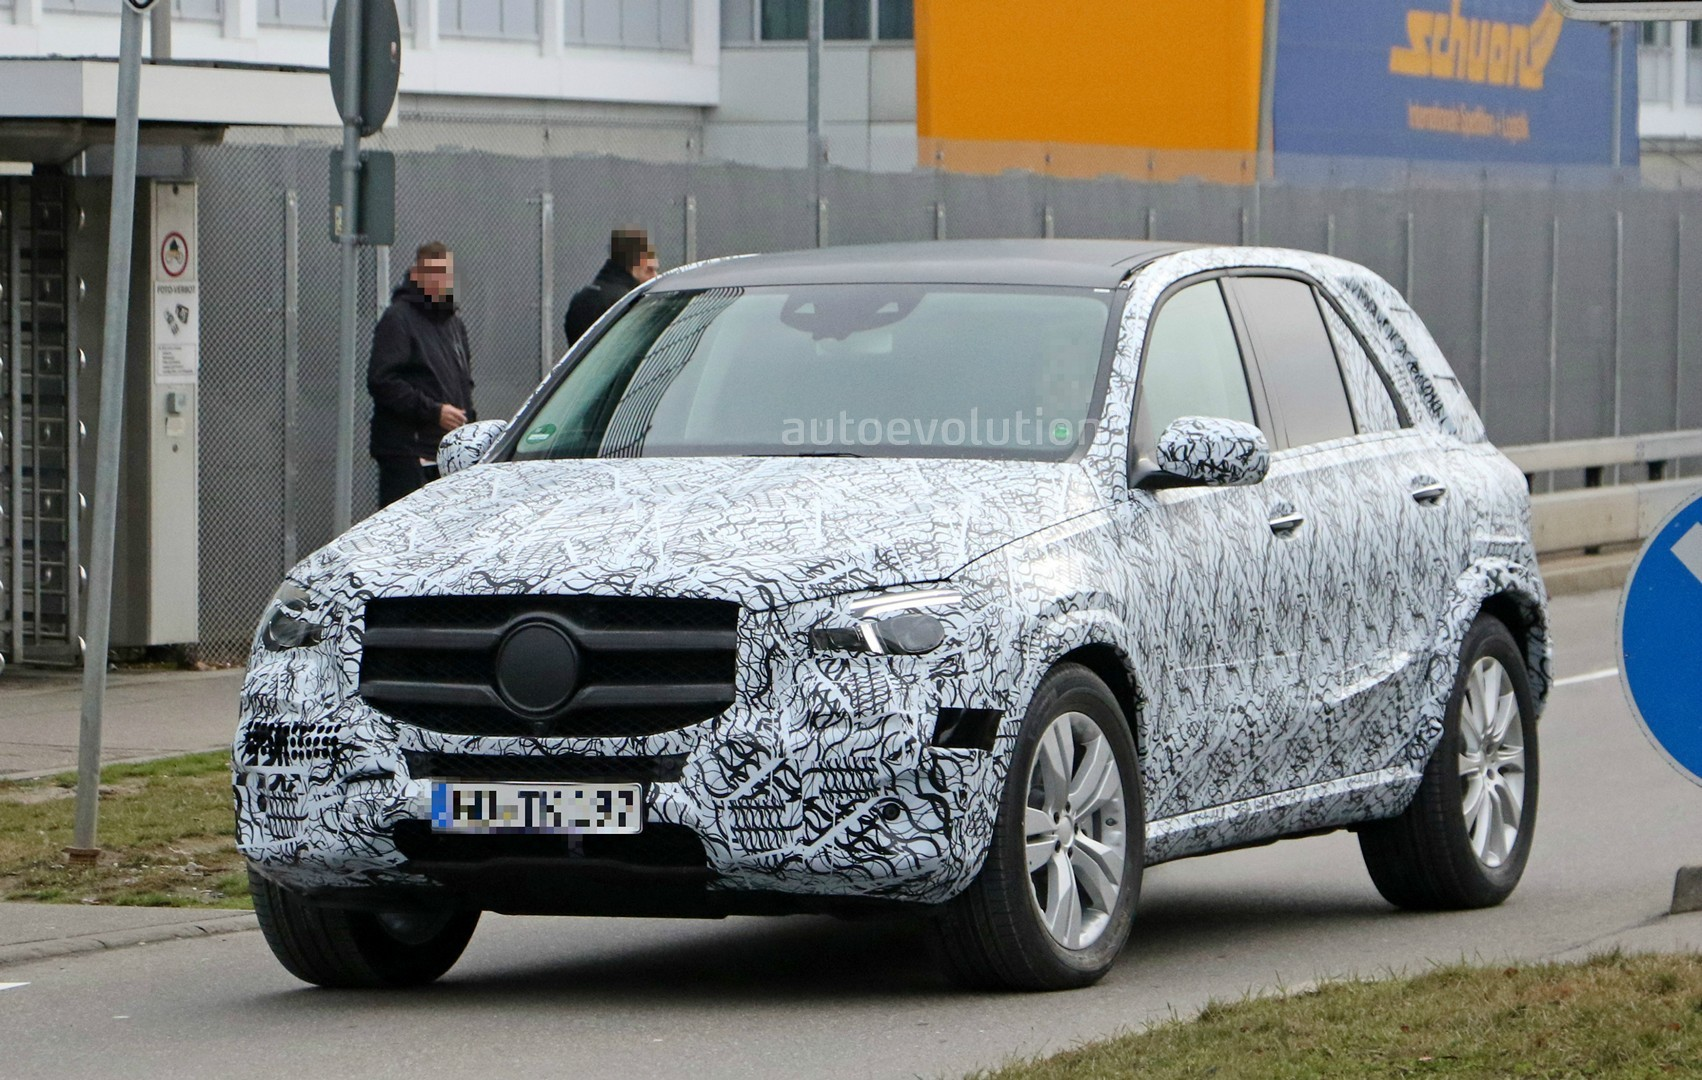 2019 mercedes-benz gle spied  muddy prototype shows g-class design influences